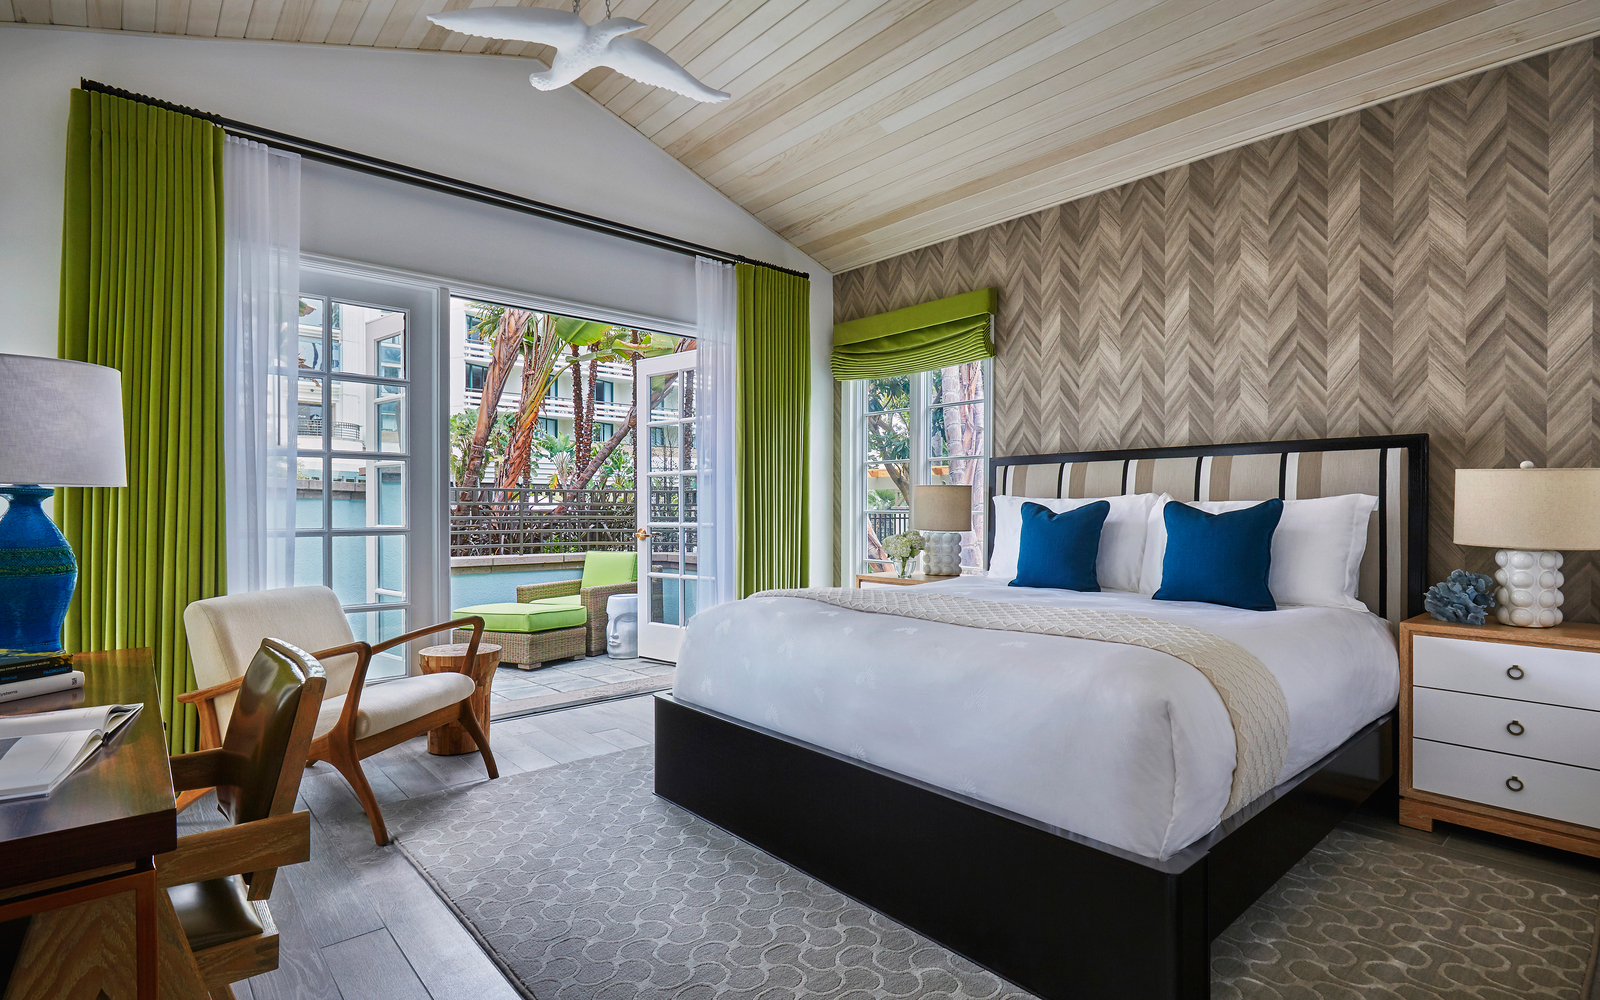 T+L Checks In: Living the Bungalow High Life at the Fairmont Miramar in Santa Monica